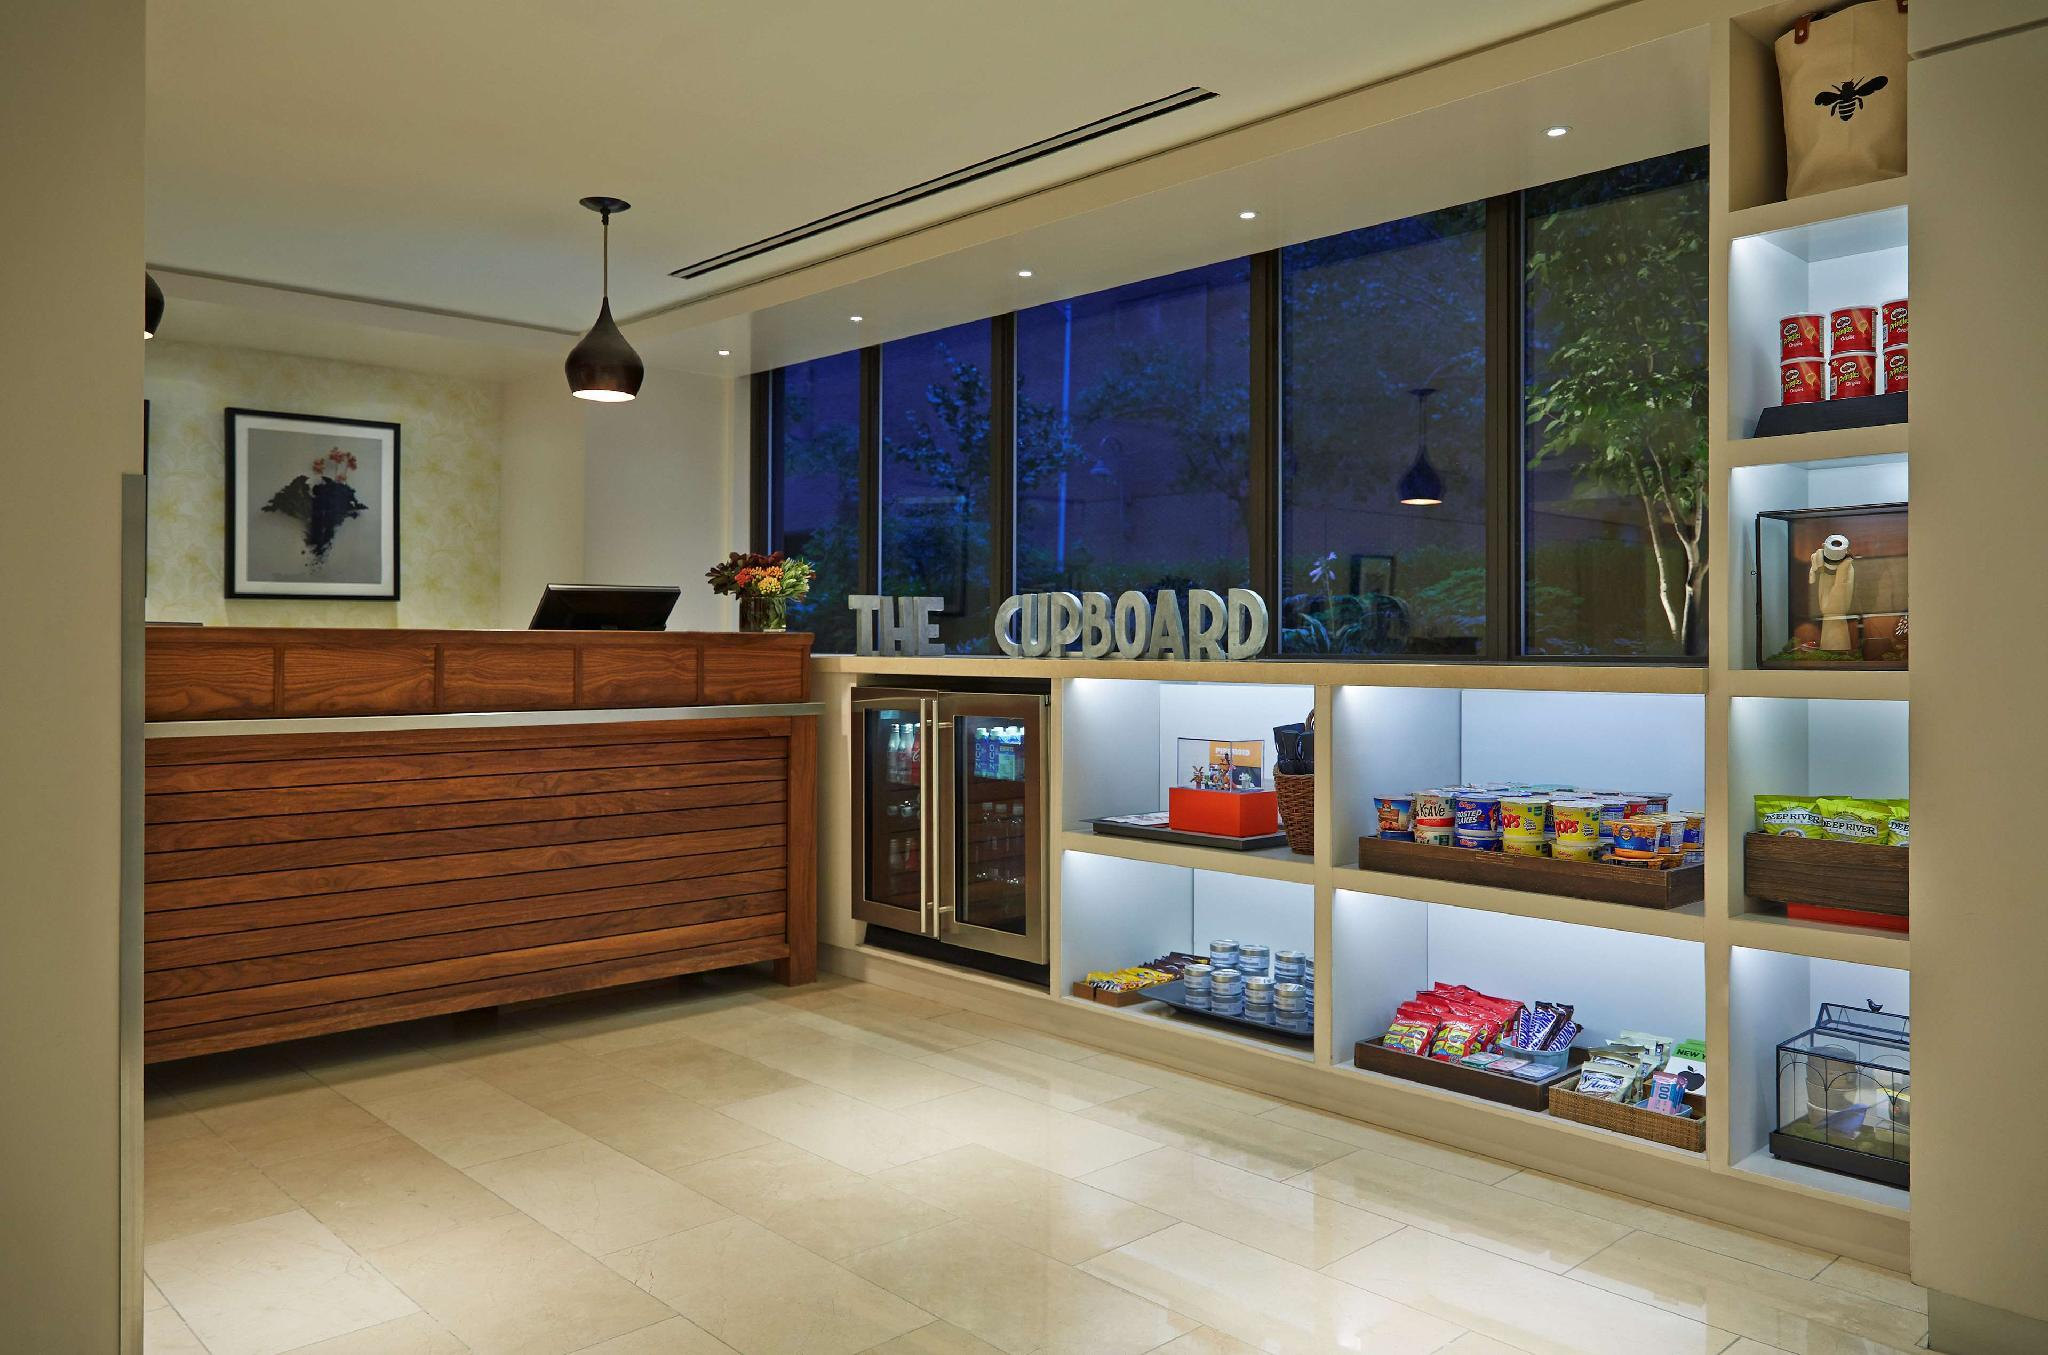 Best Price on Gardens NYCan Affinia Hotel in New York NY Reviews